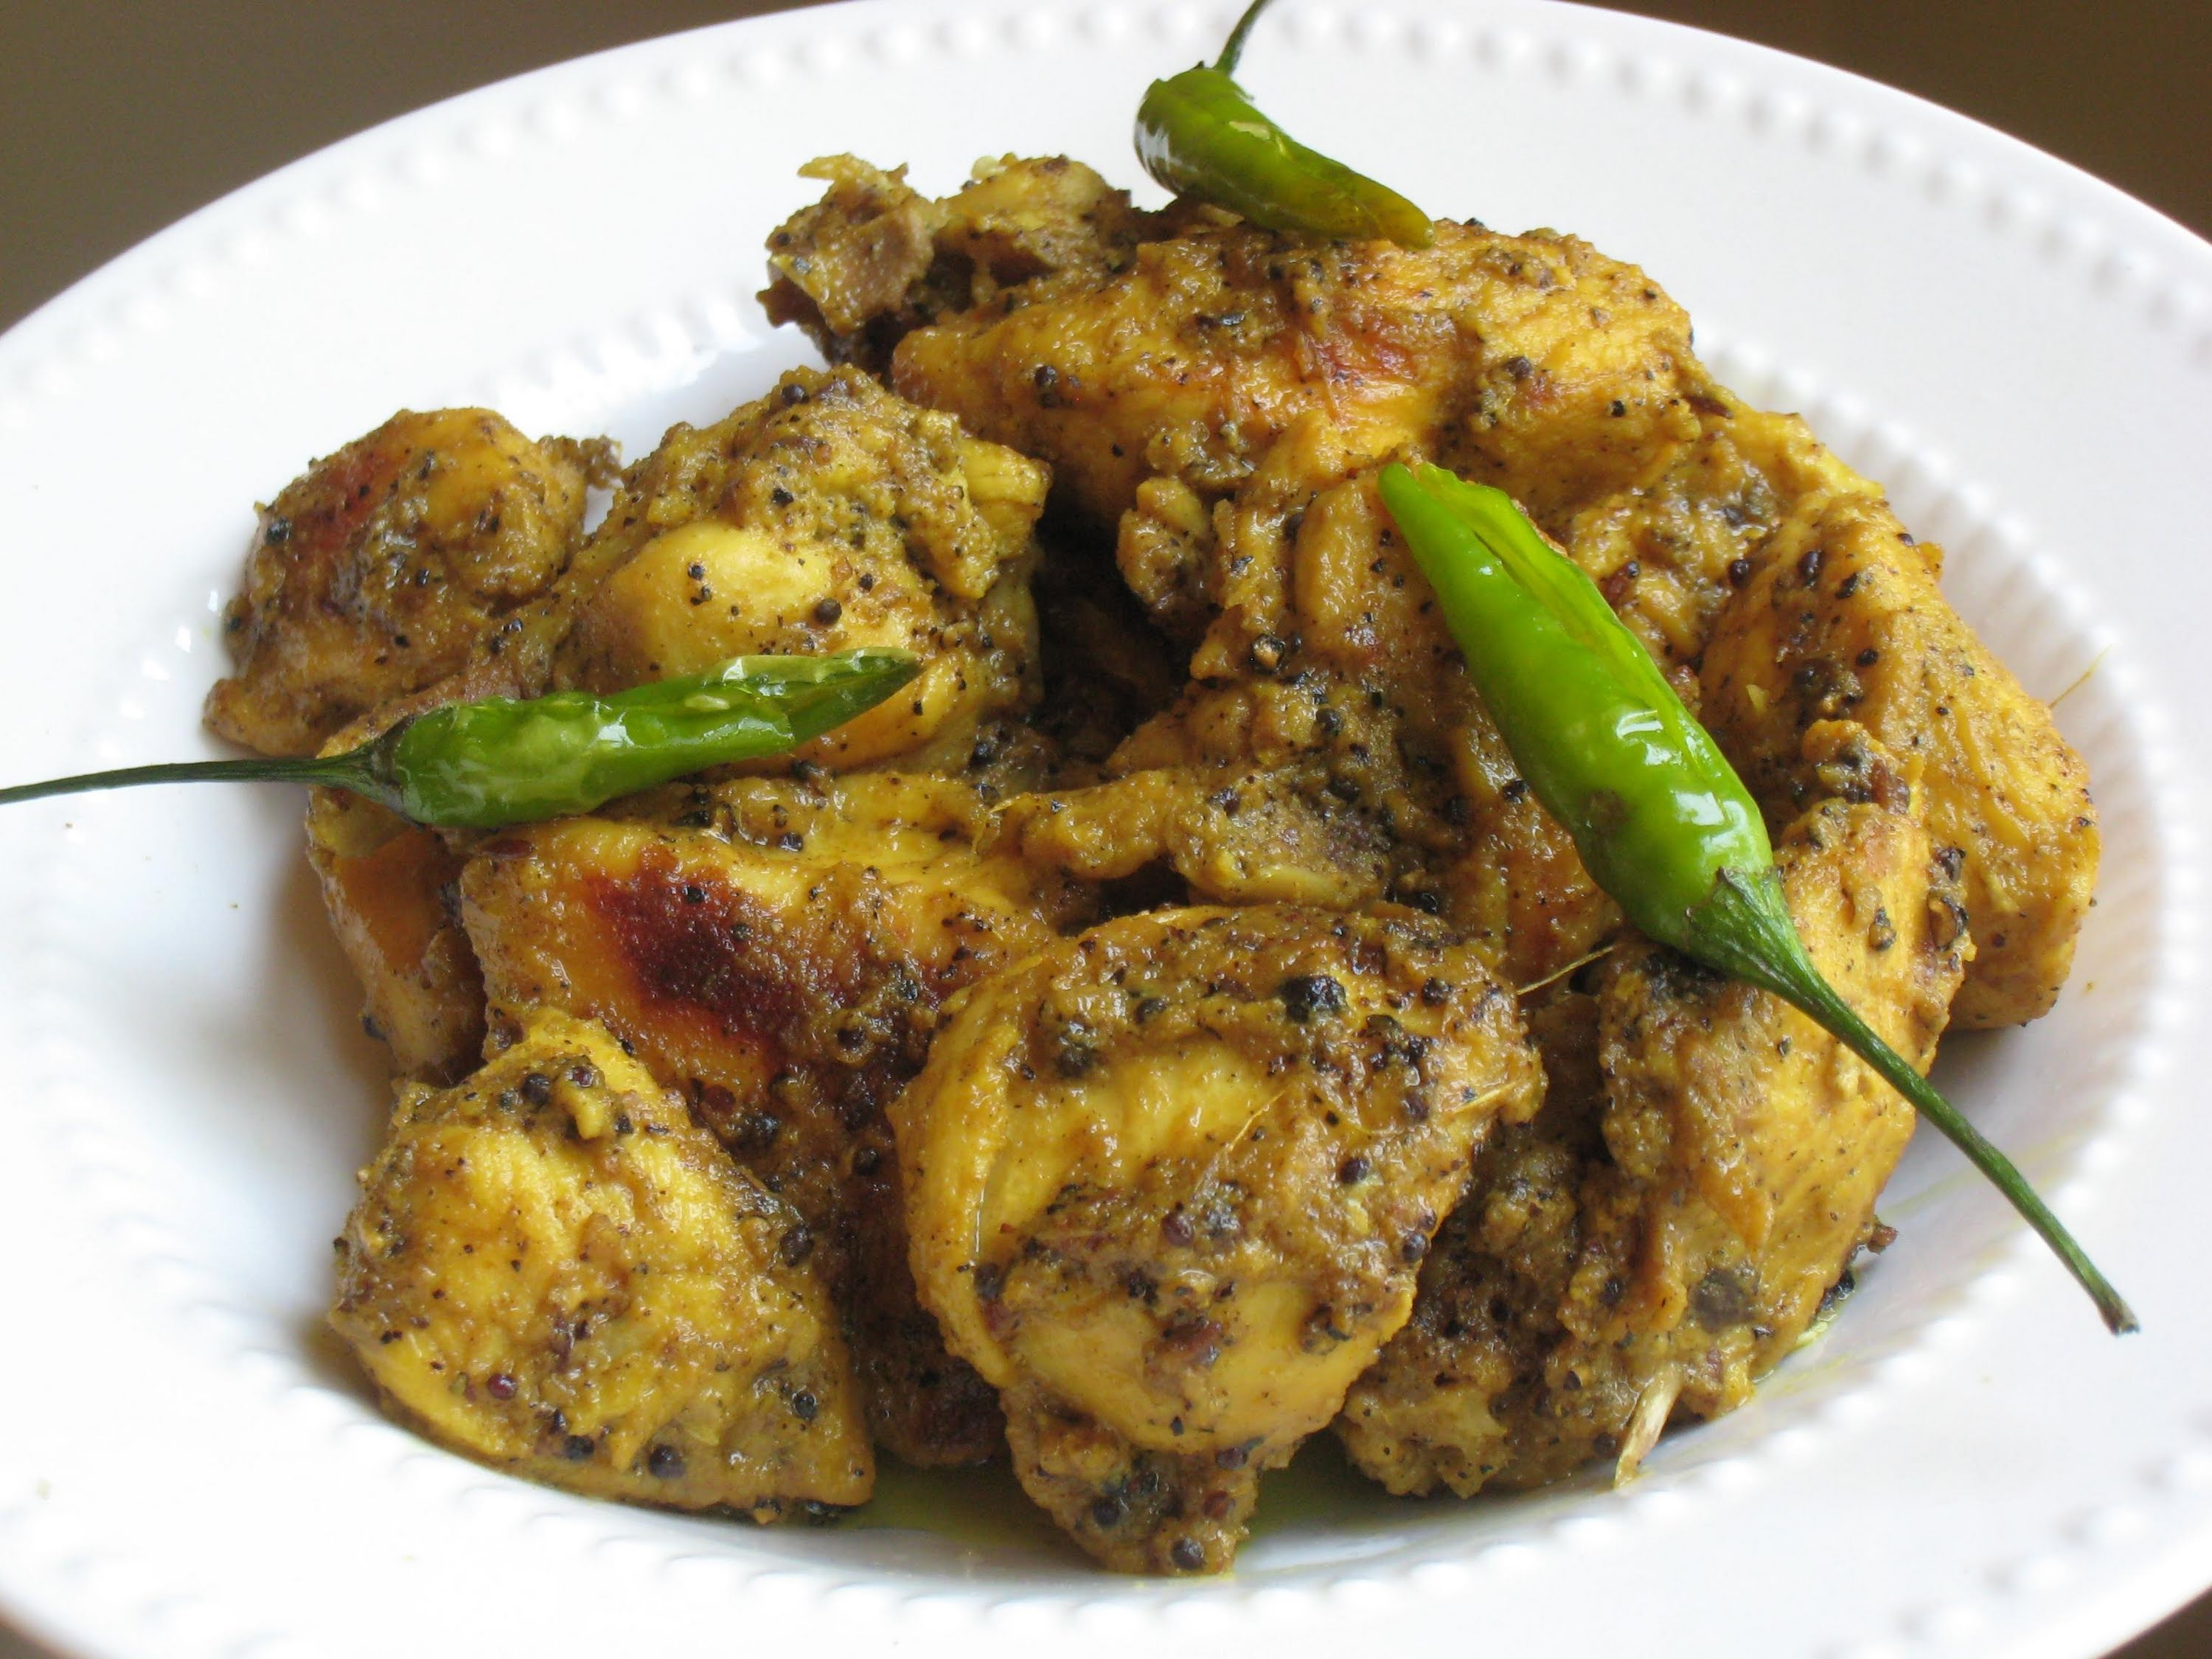 Mutton tikka kali mirch